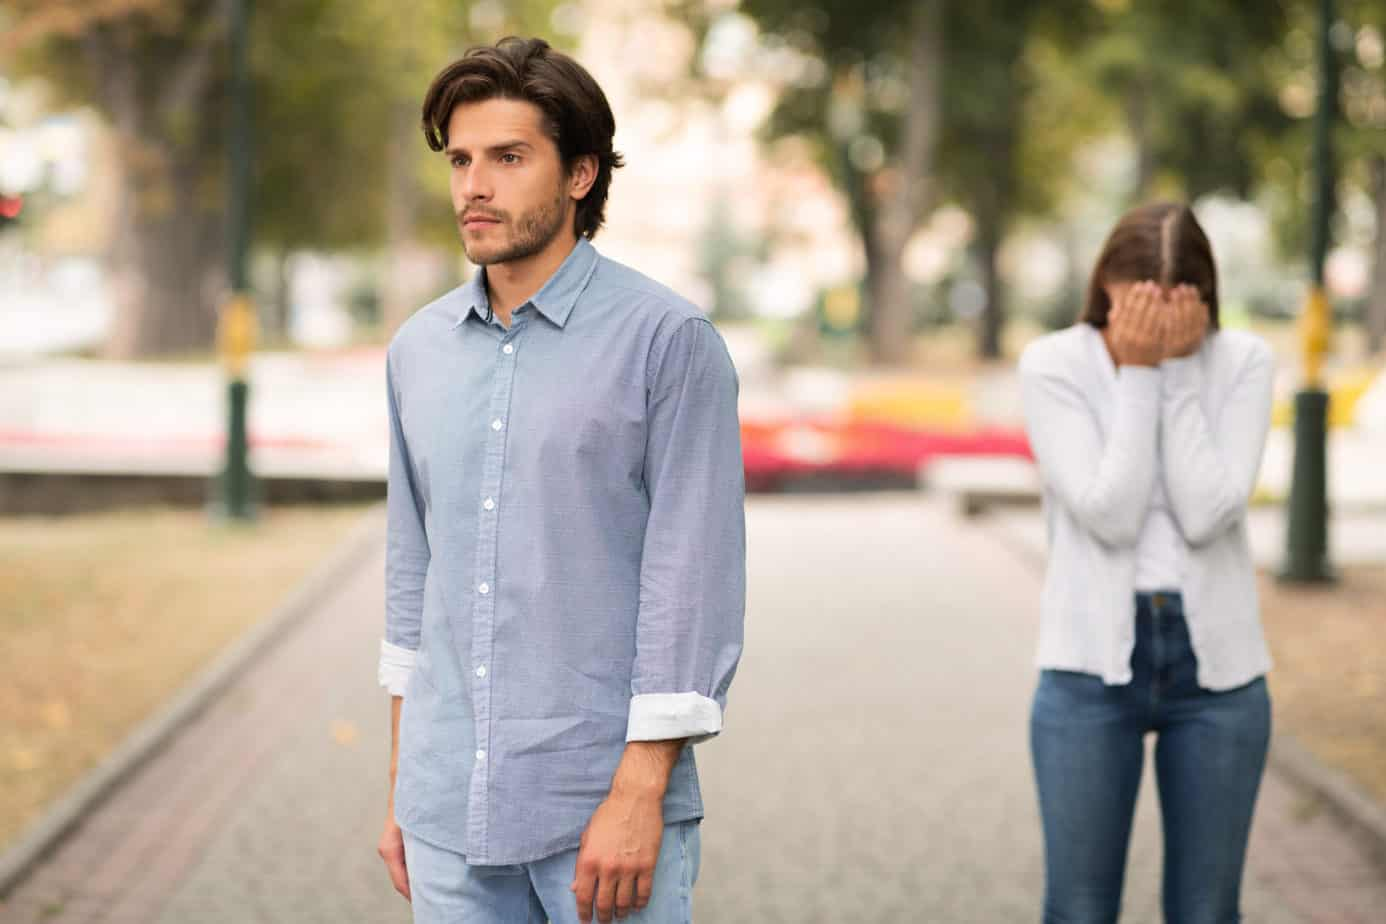 My Boyfriend Hides Me From His Family (11 Possible Reasons